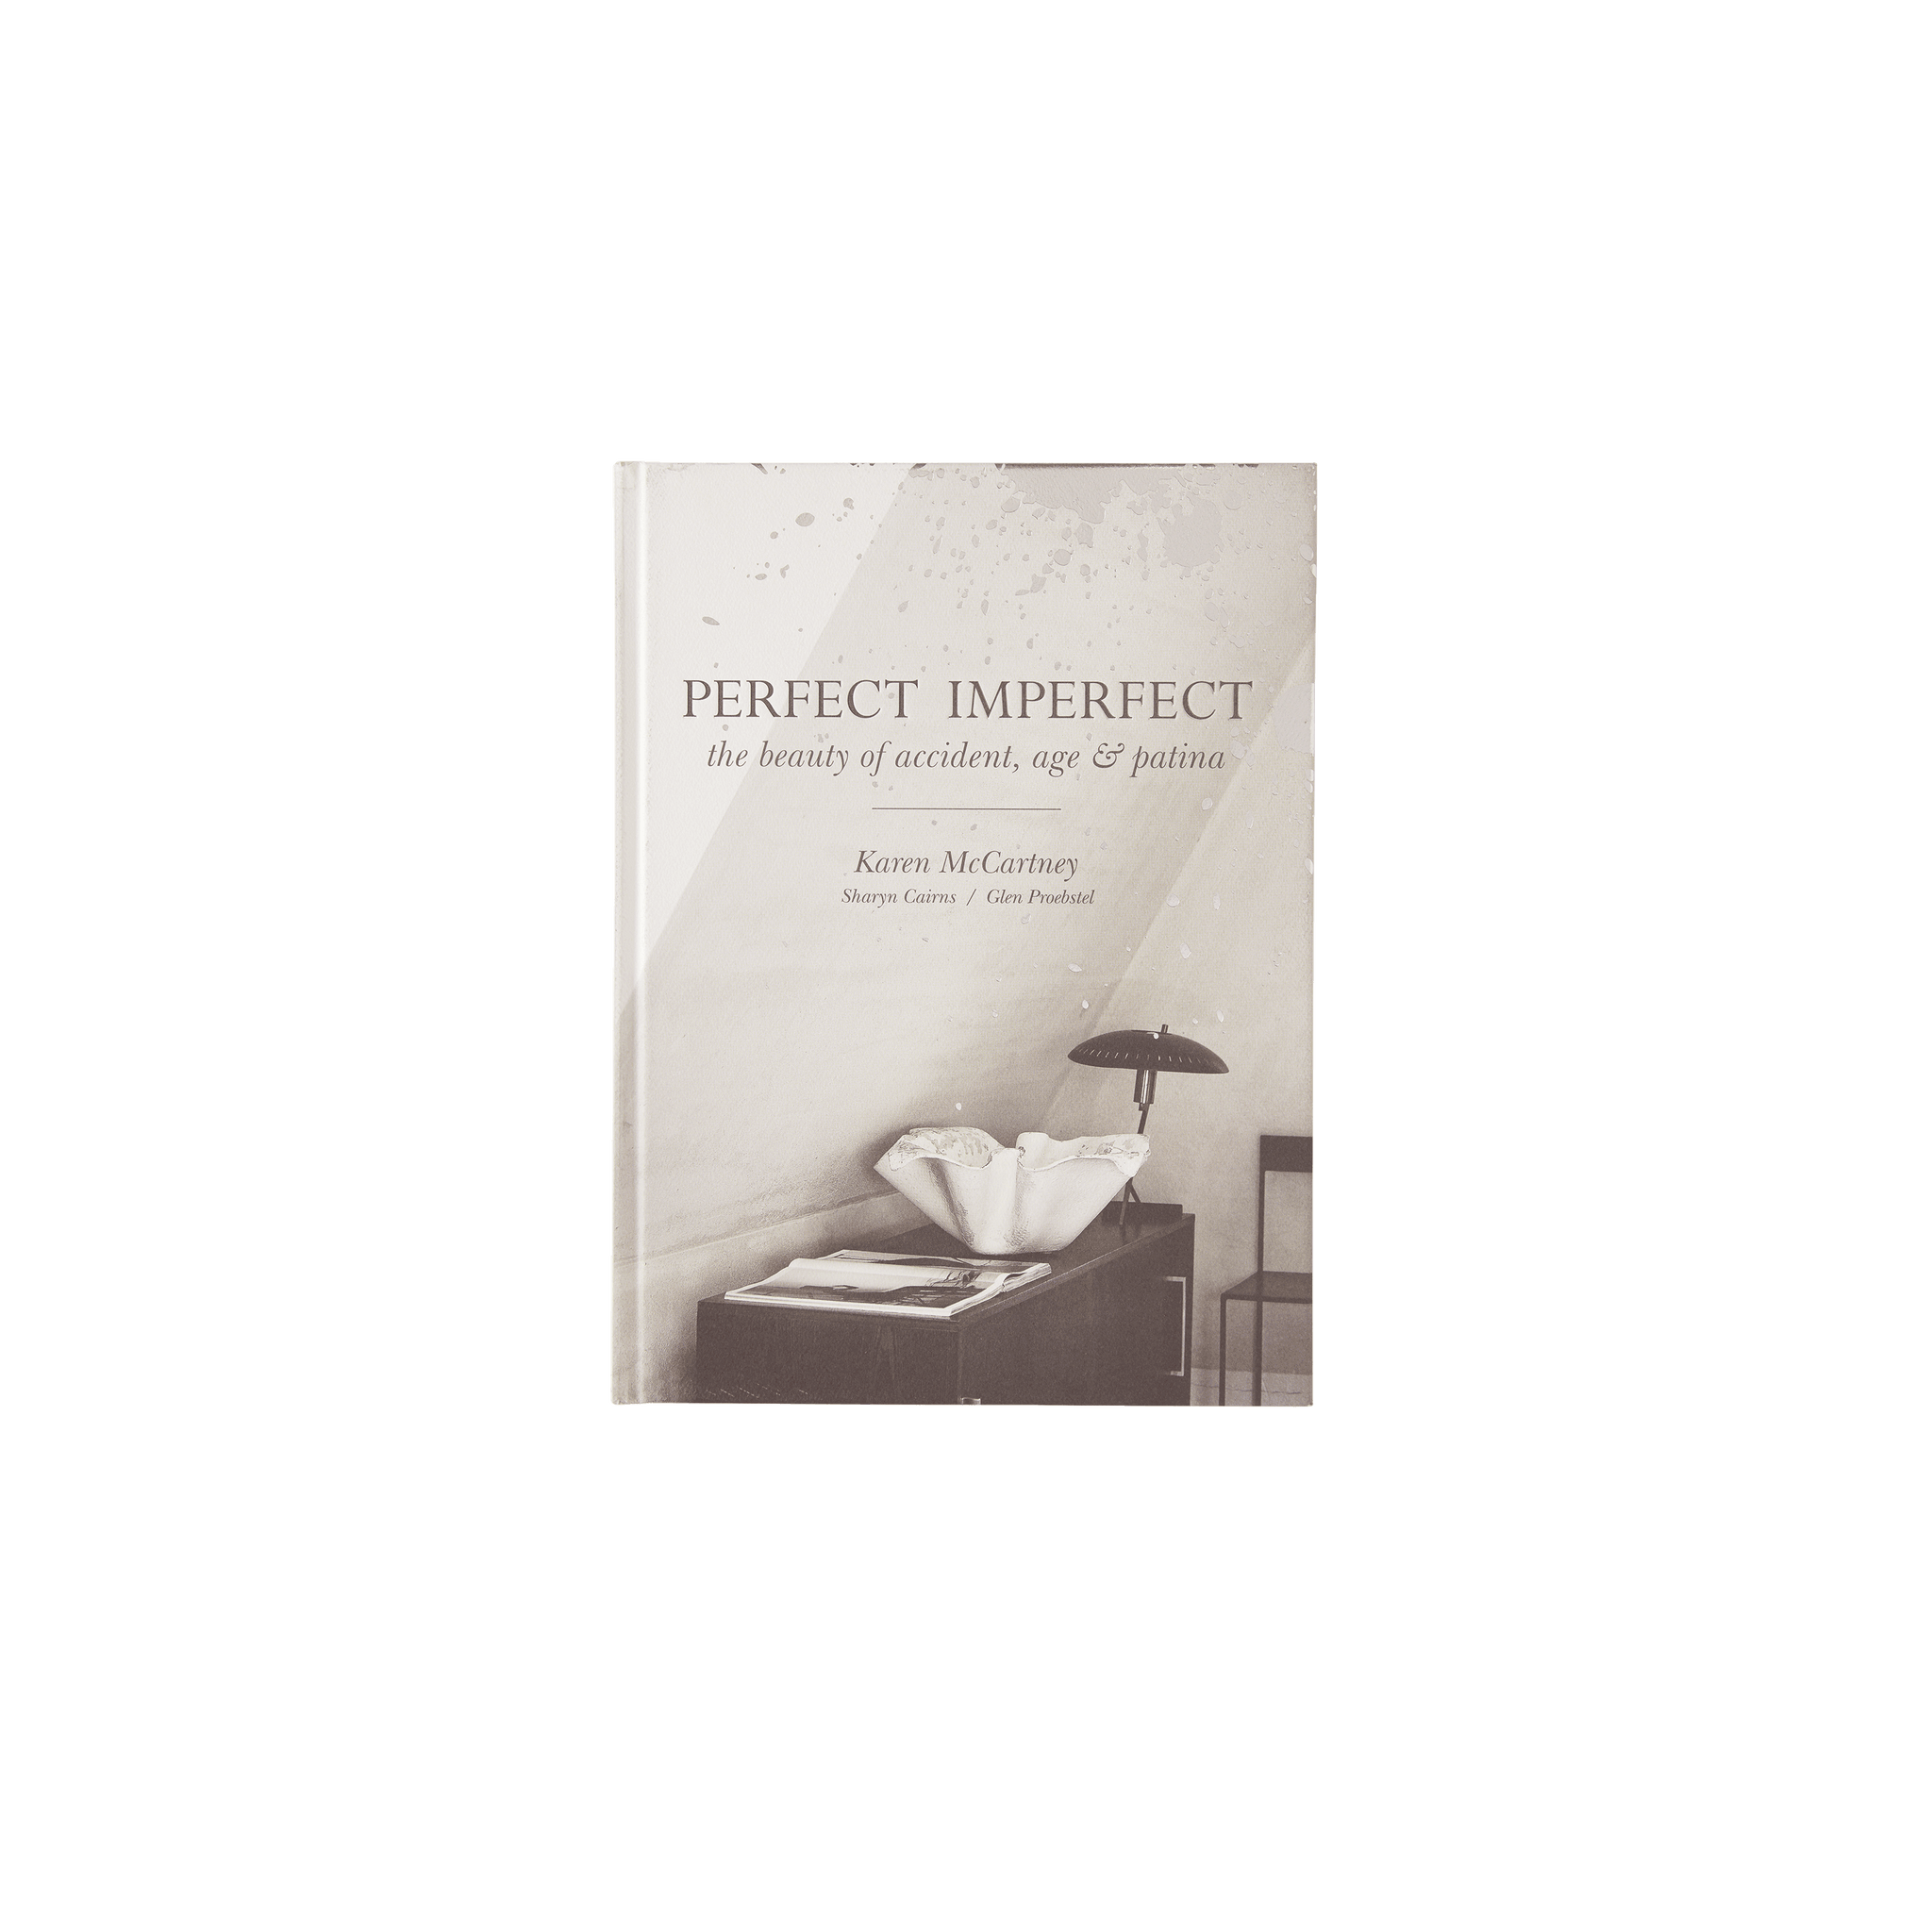 Perfect Imperfect by Karen McCartney, Sharyn Cairns & Glen Proebstel